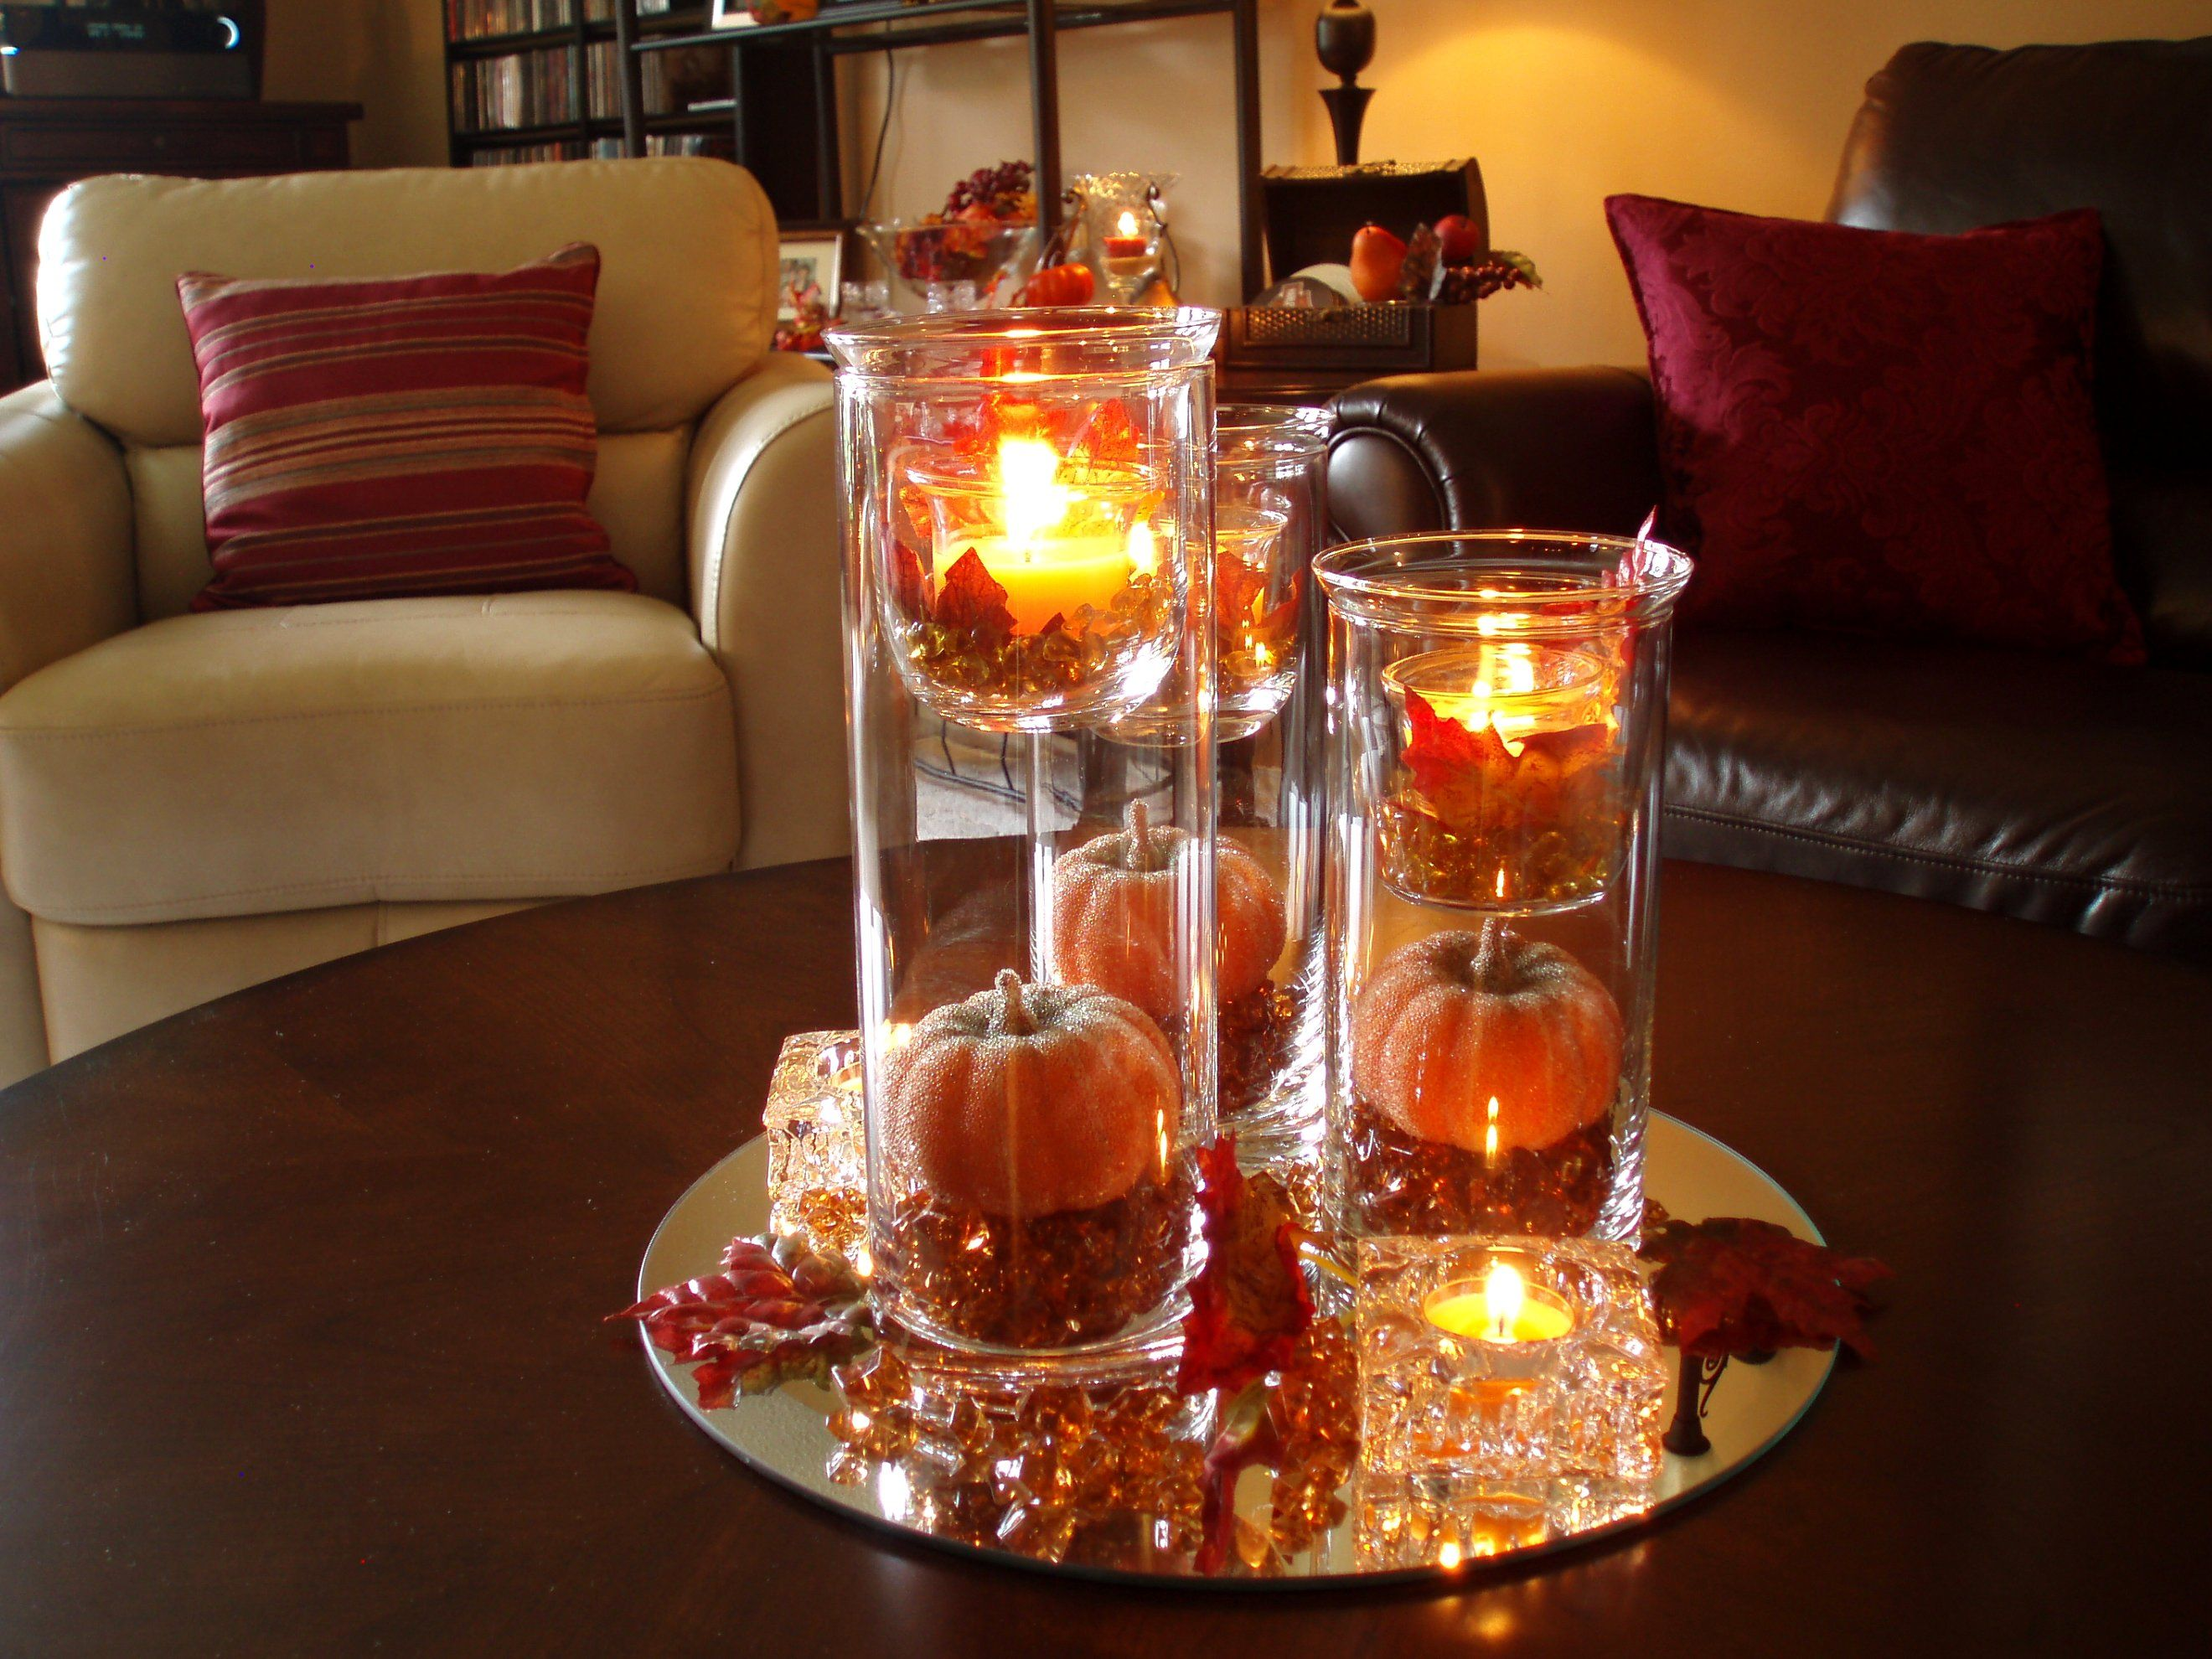 Decoration ideas awesome light candle in clear glass